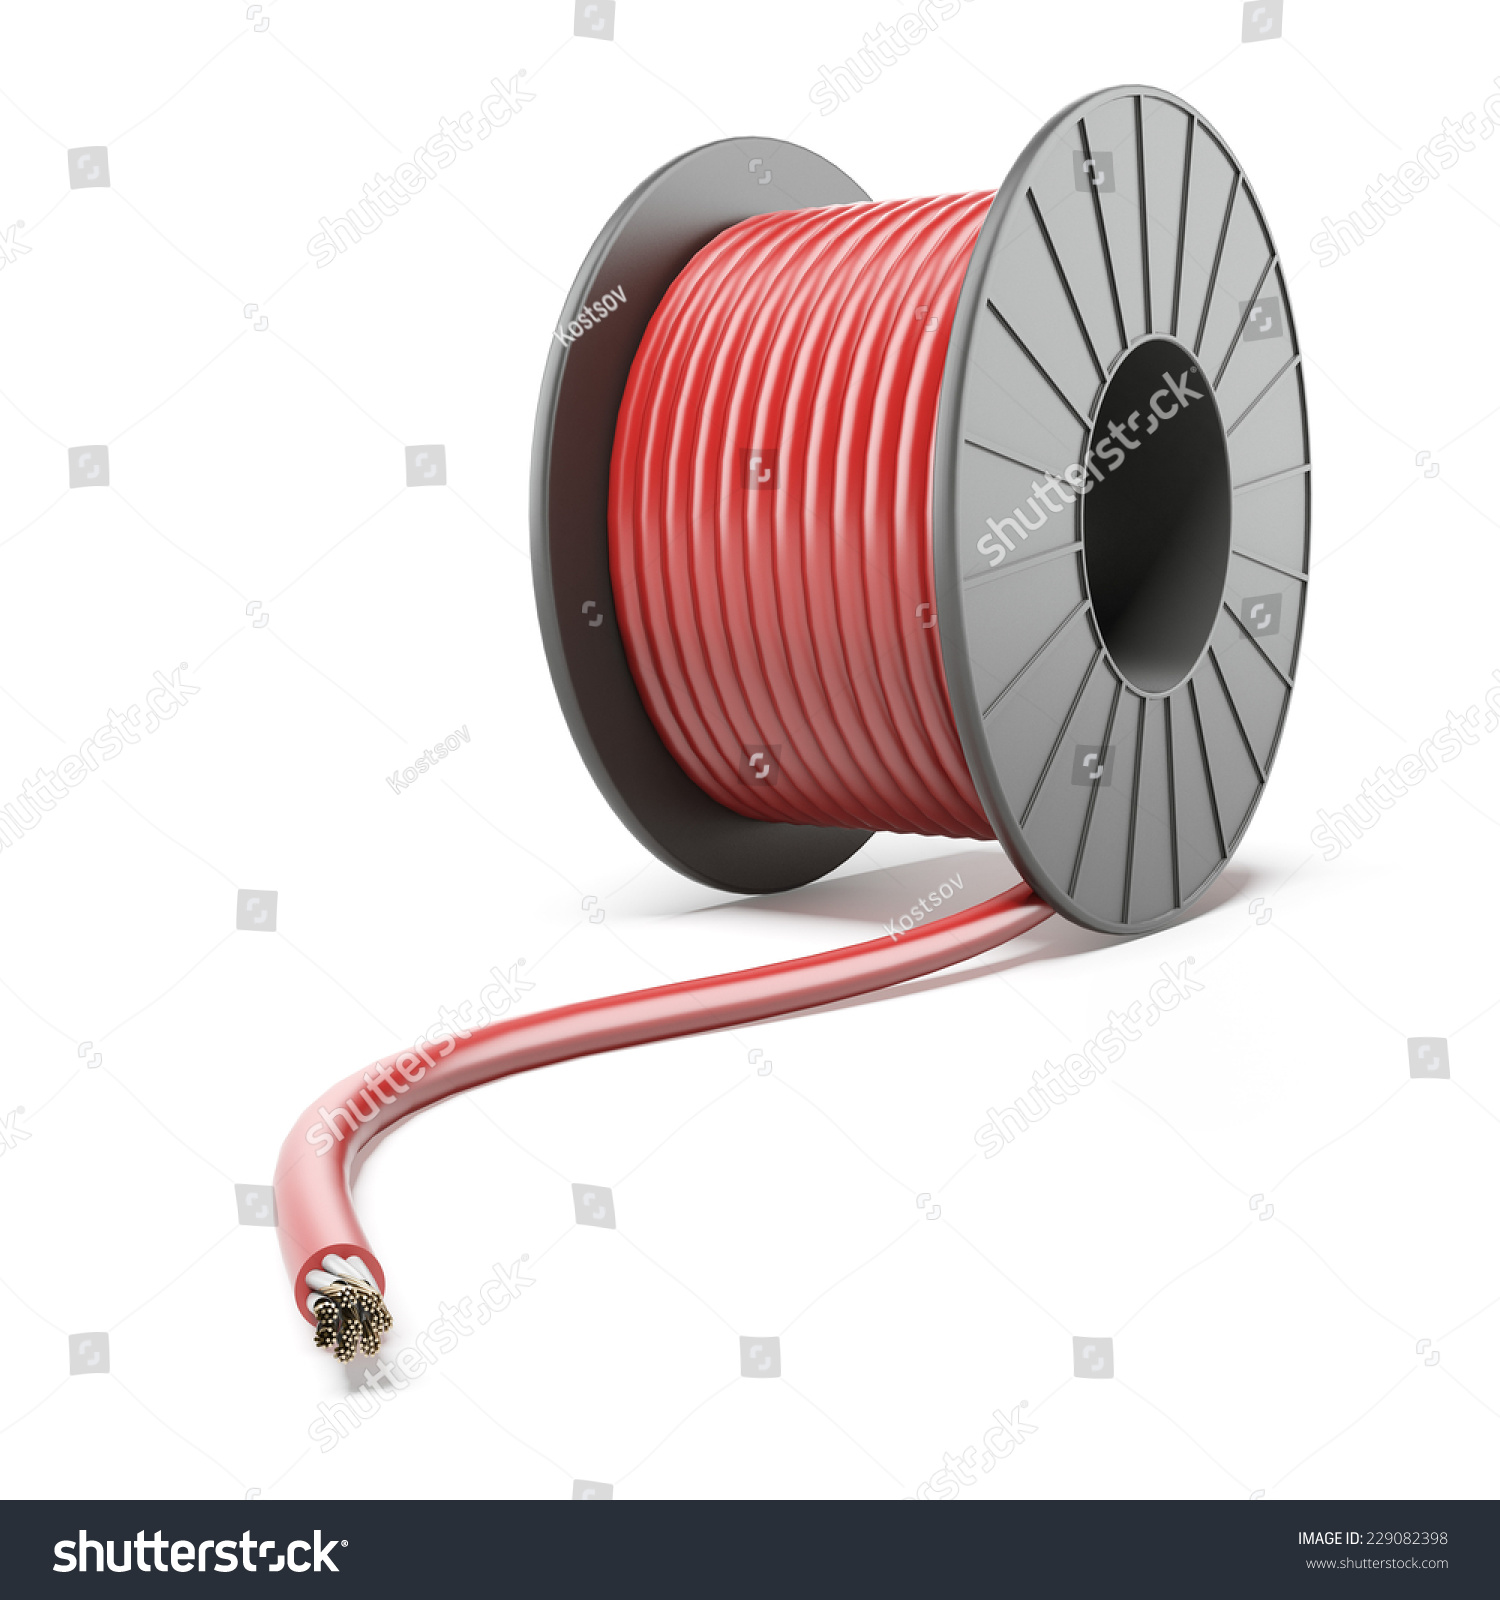 Names Of High Voltage Power Cable : High voltage power cable stock photo shutterstock